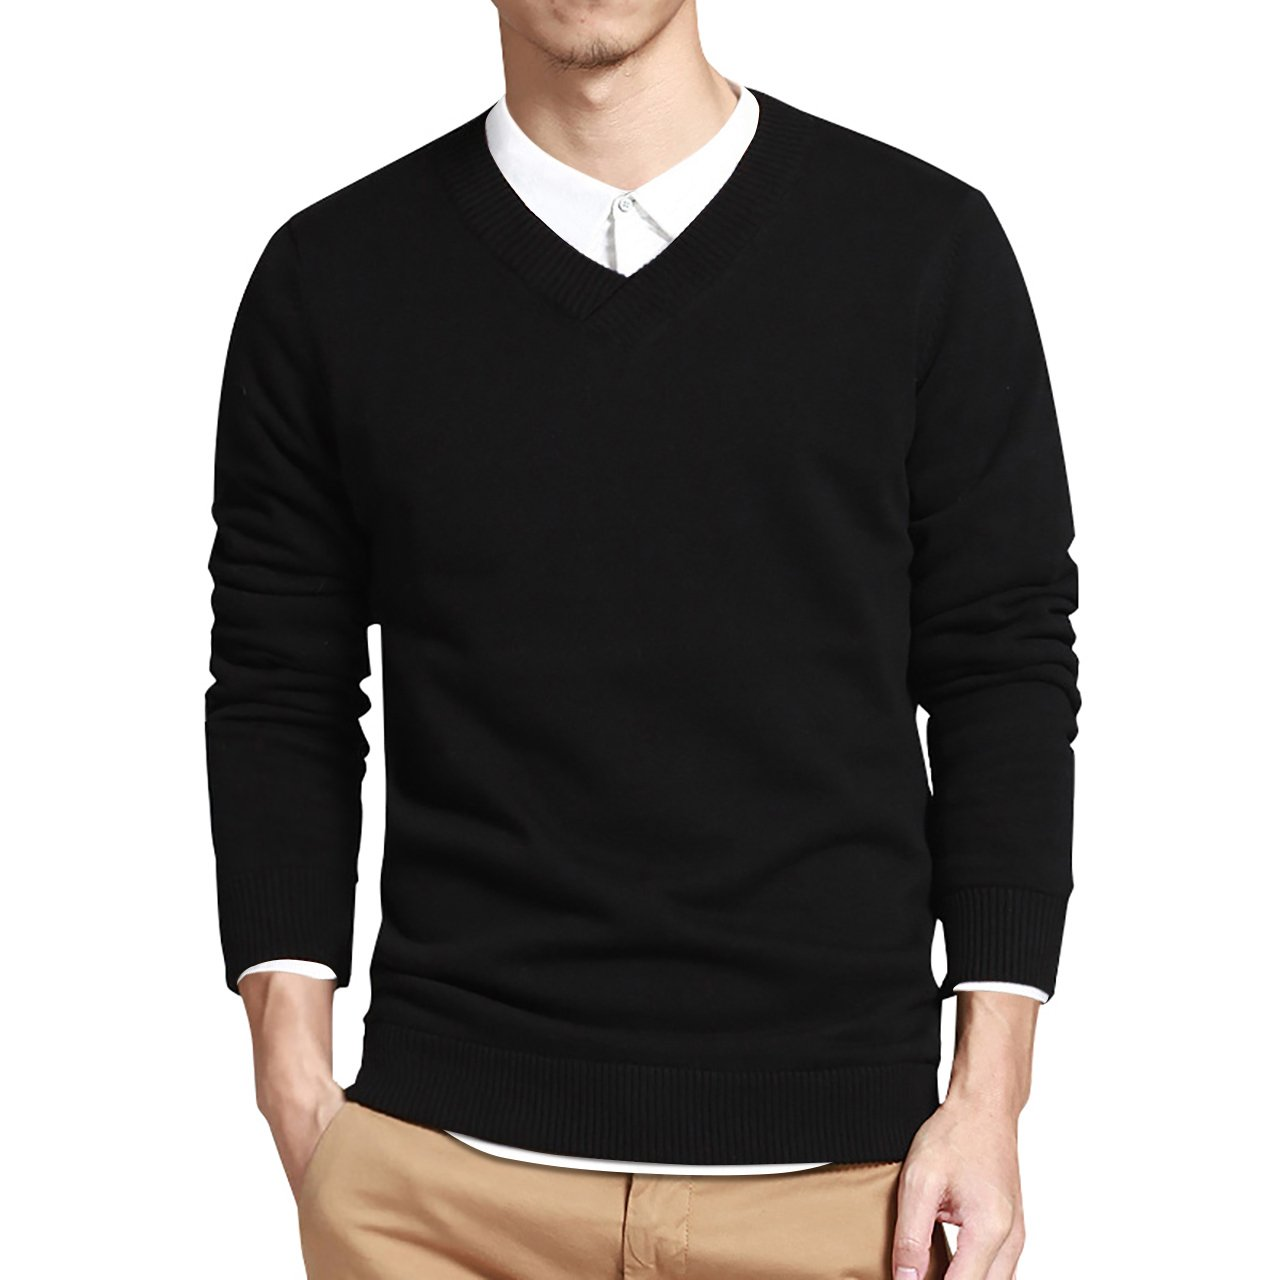 LTIFONE Mens Slim Comfortably Knitted Long Sleeve V-Neck Sweaters (Black,L) by LTIFONE (Image #1)